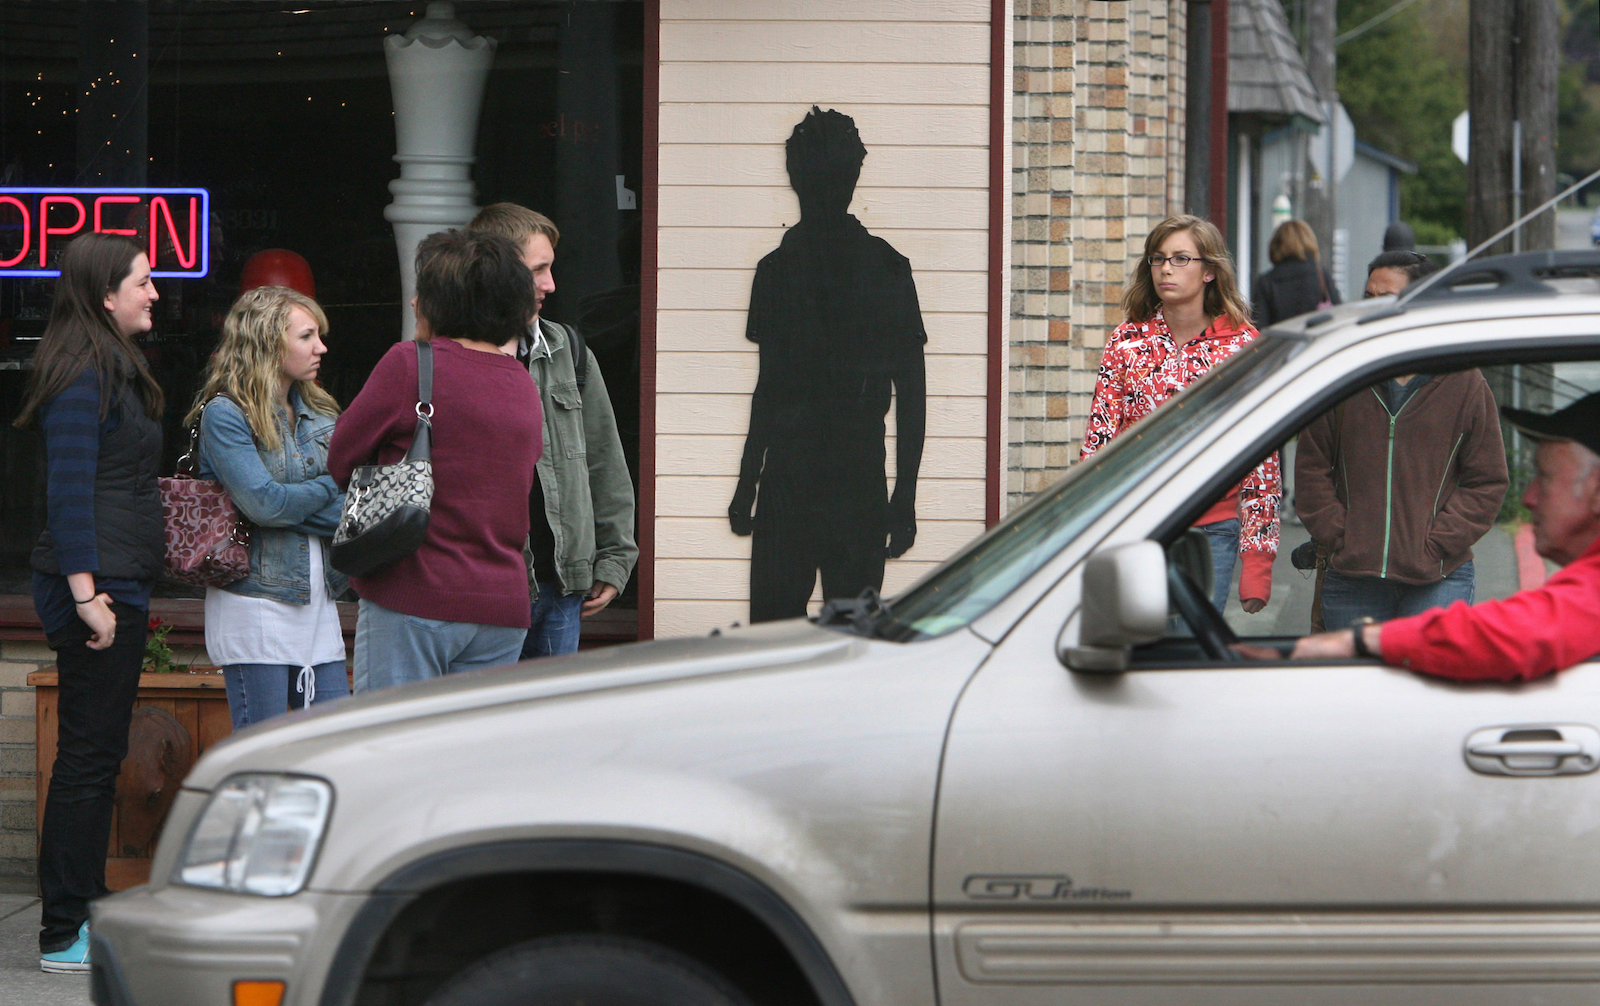 """a cut-out of """"Edward,"""" the vampire protagonist from Twilight, pasted onto the side of a building while groups of normal people stand by"""